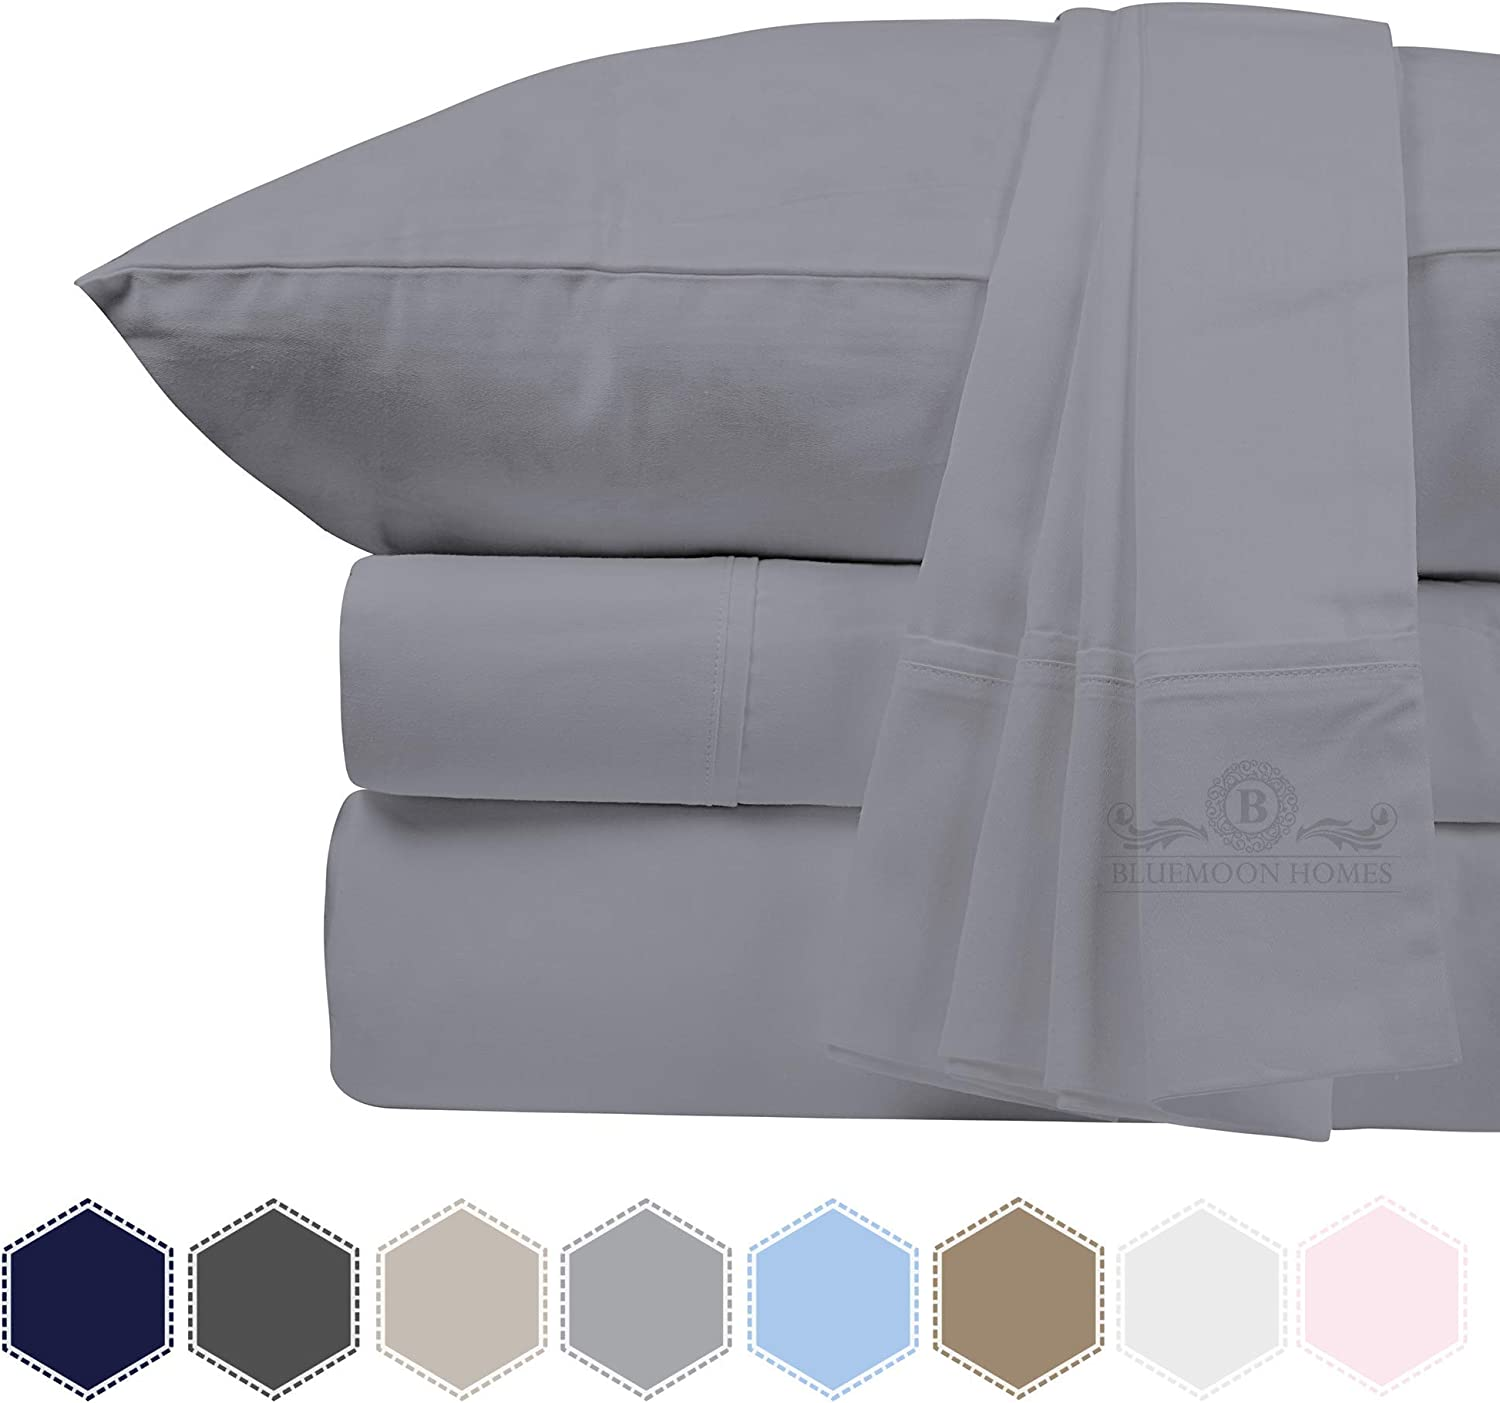 Bluemoon Homes Luxurious 1000 Thread Count Italian Finish 100% Egyptian Cotton 4-Piece Bed Sheet Set, Fits Mattress Up to 18 inches Deep Pocket, Solid Pattern (Color - Silver Grey, Size - King).